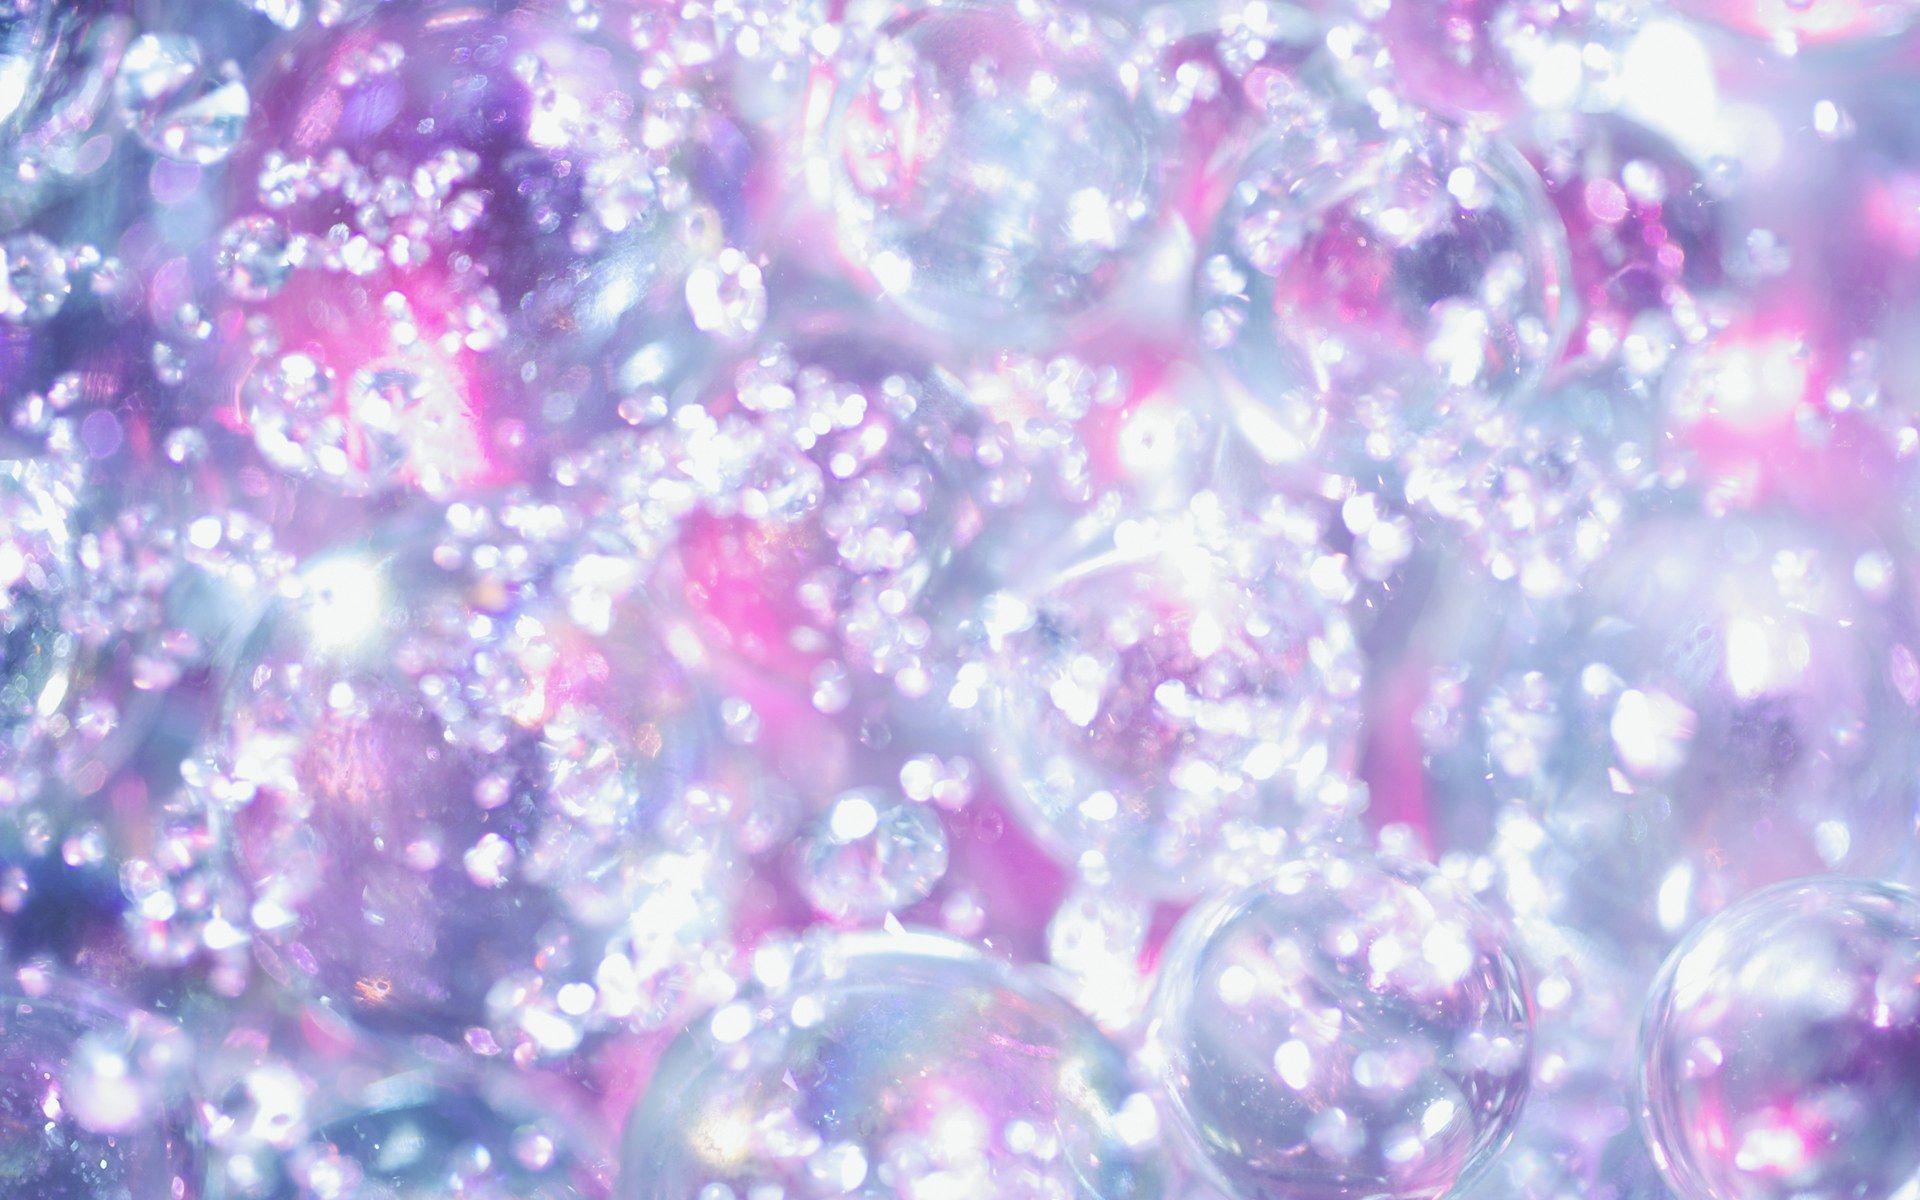 Wallpapers For ></noscript> Sparkle Twitter Picture PPT Backgrounds for Powerpoint Templates 4K